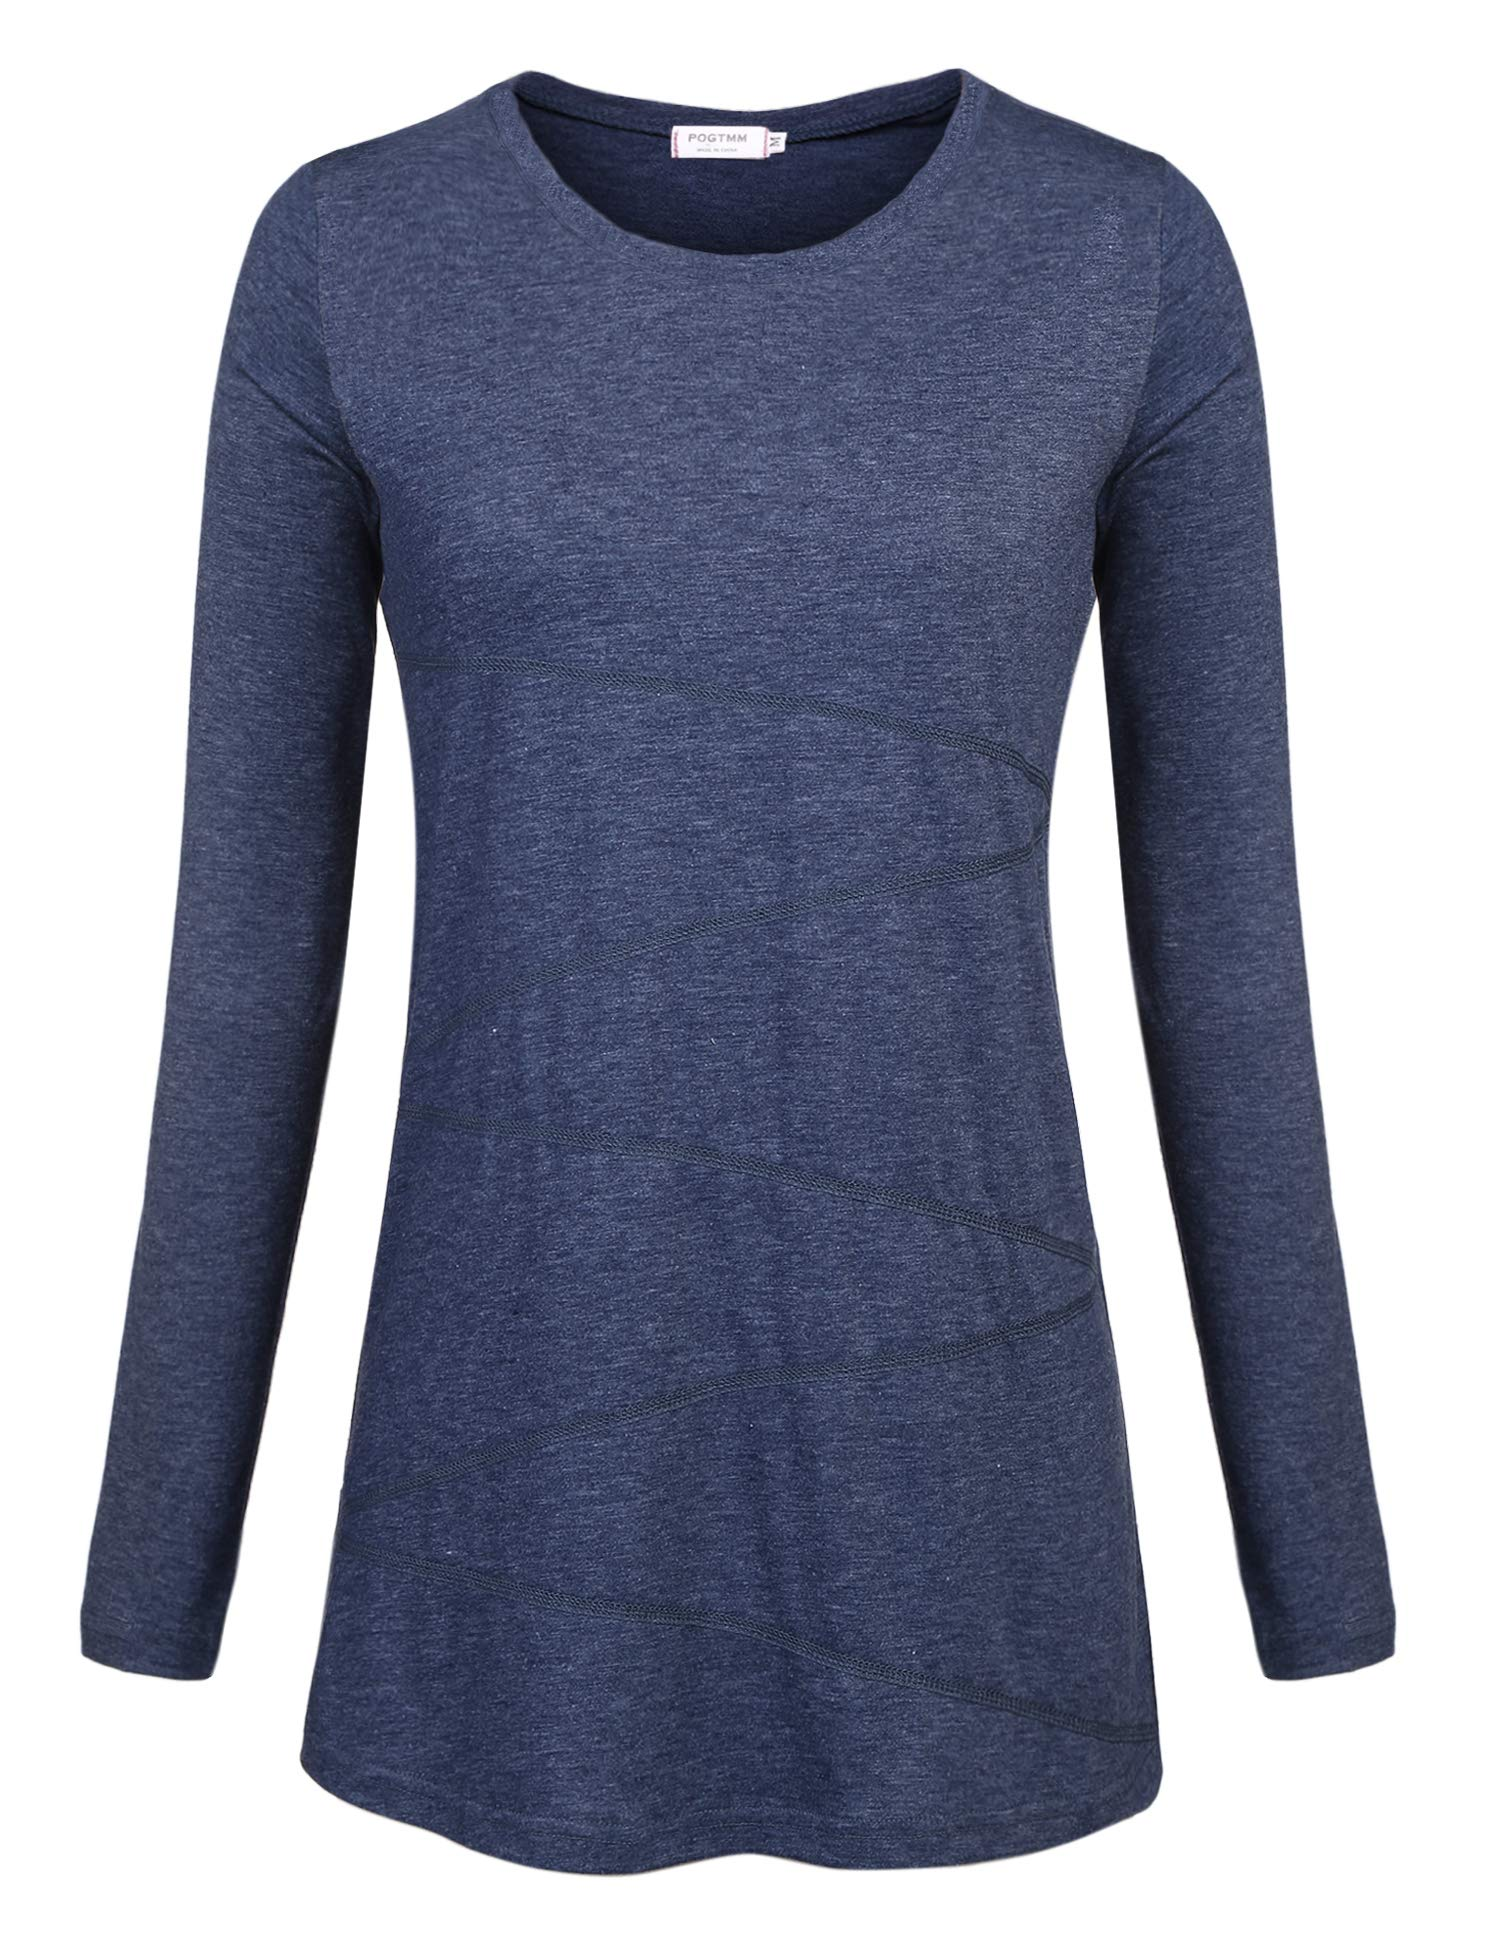 POGTMM Yoga Tops Activewear, Women's Long Sleeve Shirts Round Neck Leisure Comfy Gym Clothes Casual Style High Stretchy Ladies Loose Workout T-Shirt Blouse (ZLong Sleeve-Blue, US XL(16-18))